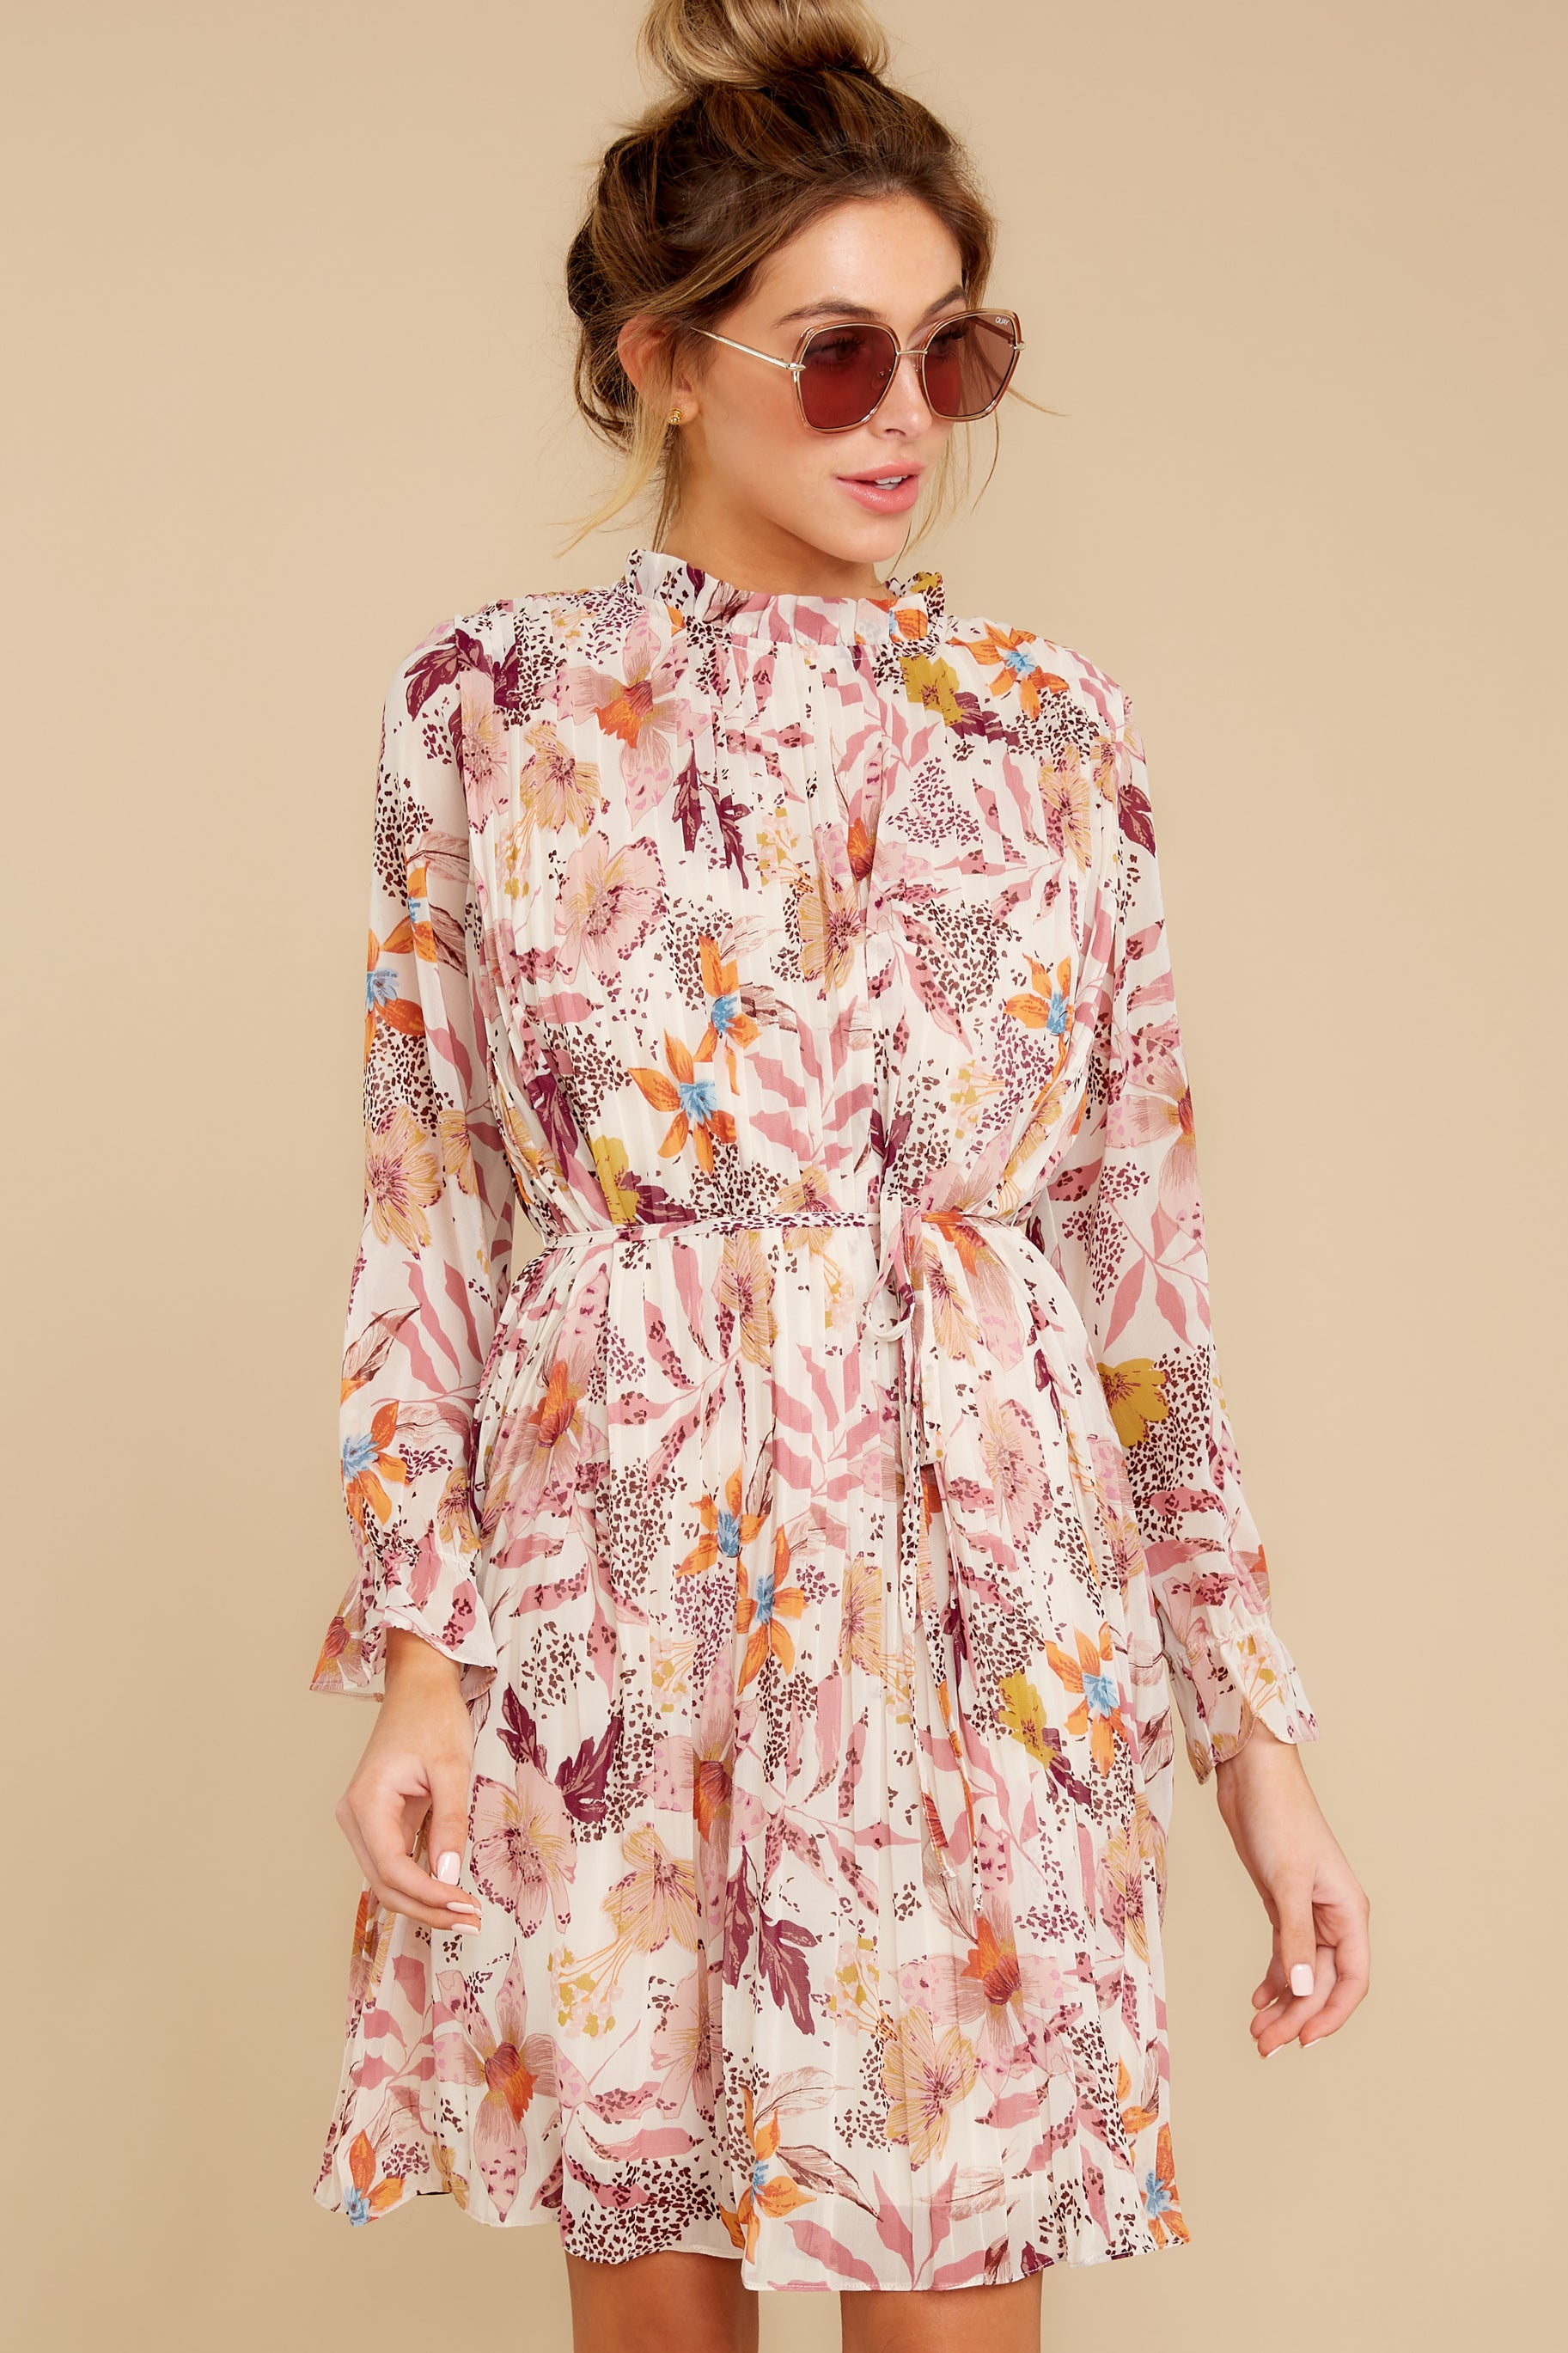 5 Straight For Your Heart Ivory Floral Print Dress at reddressboutique.com